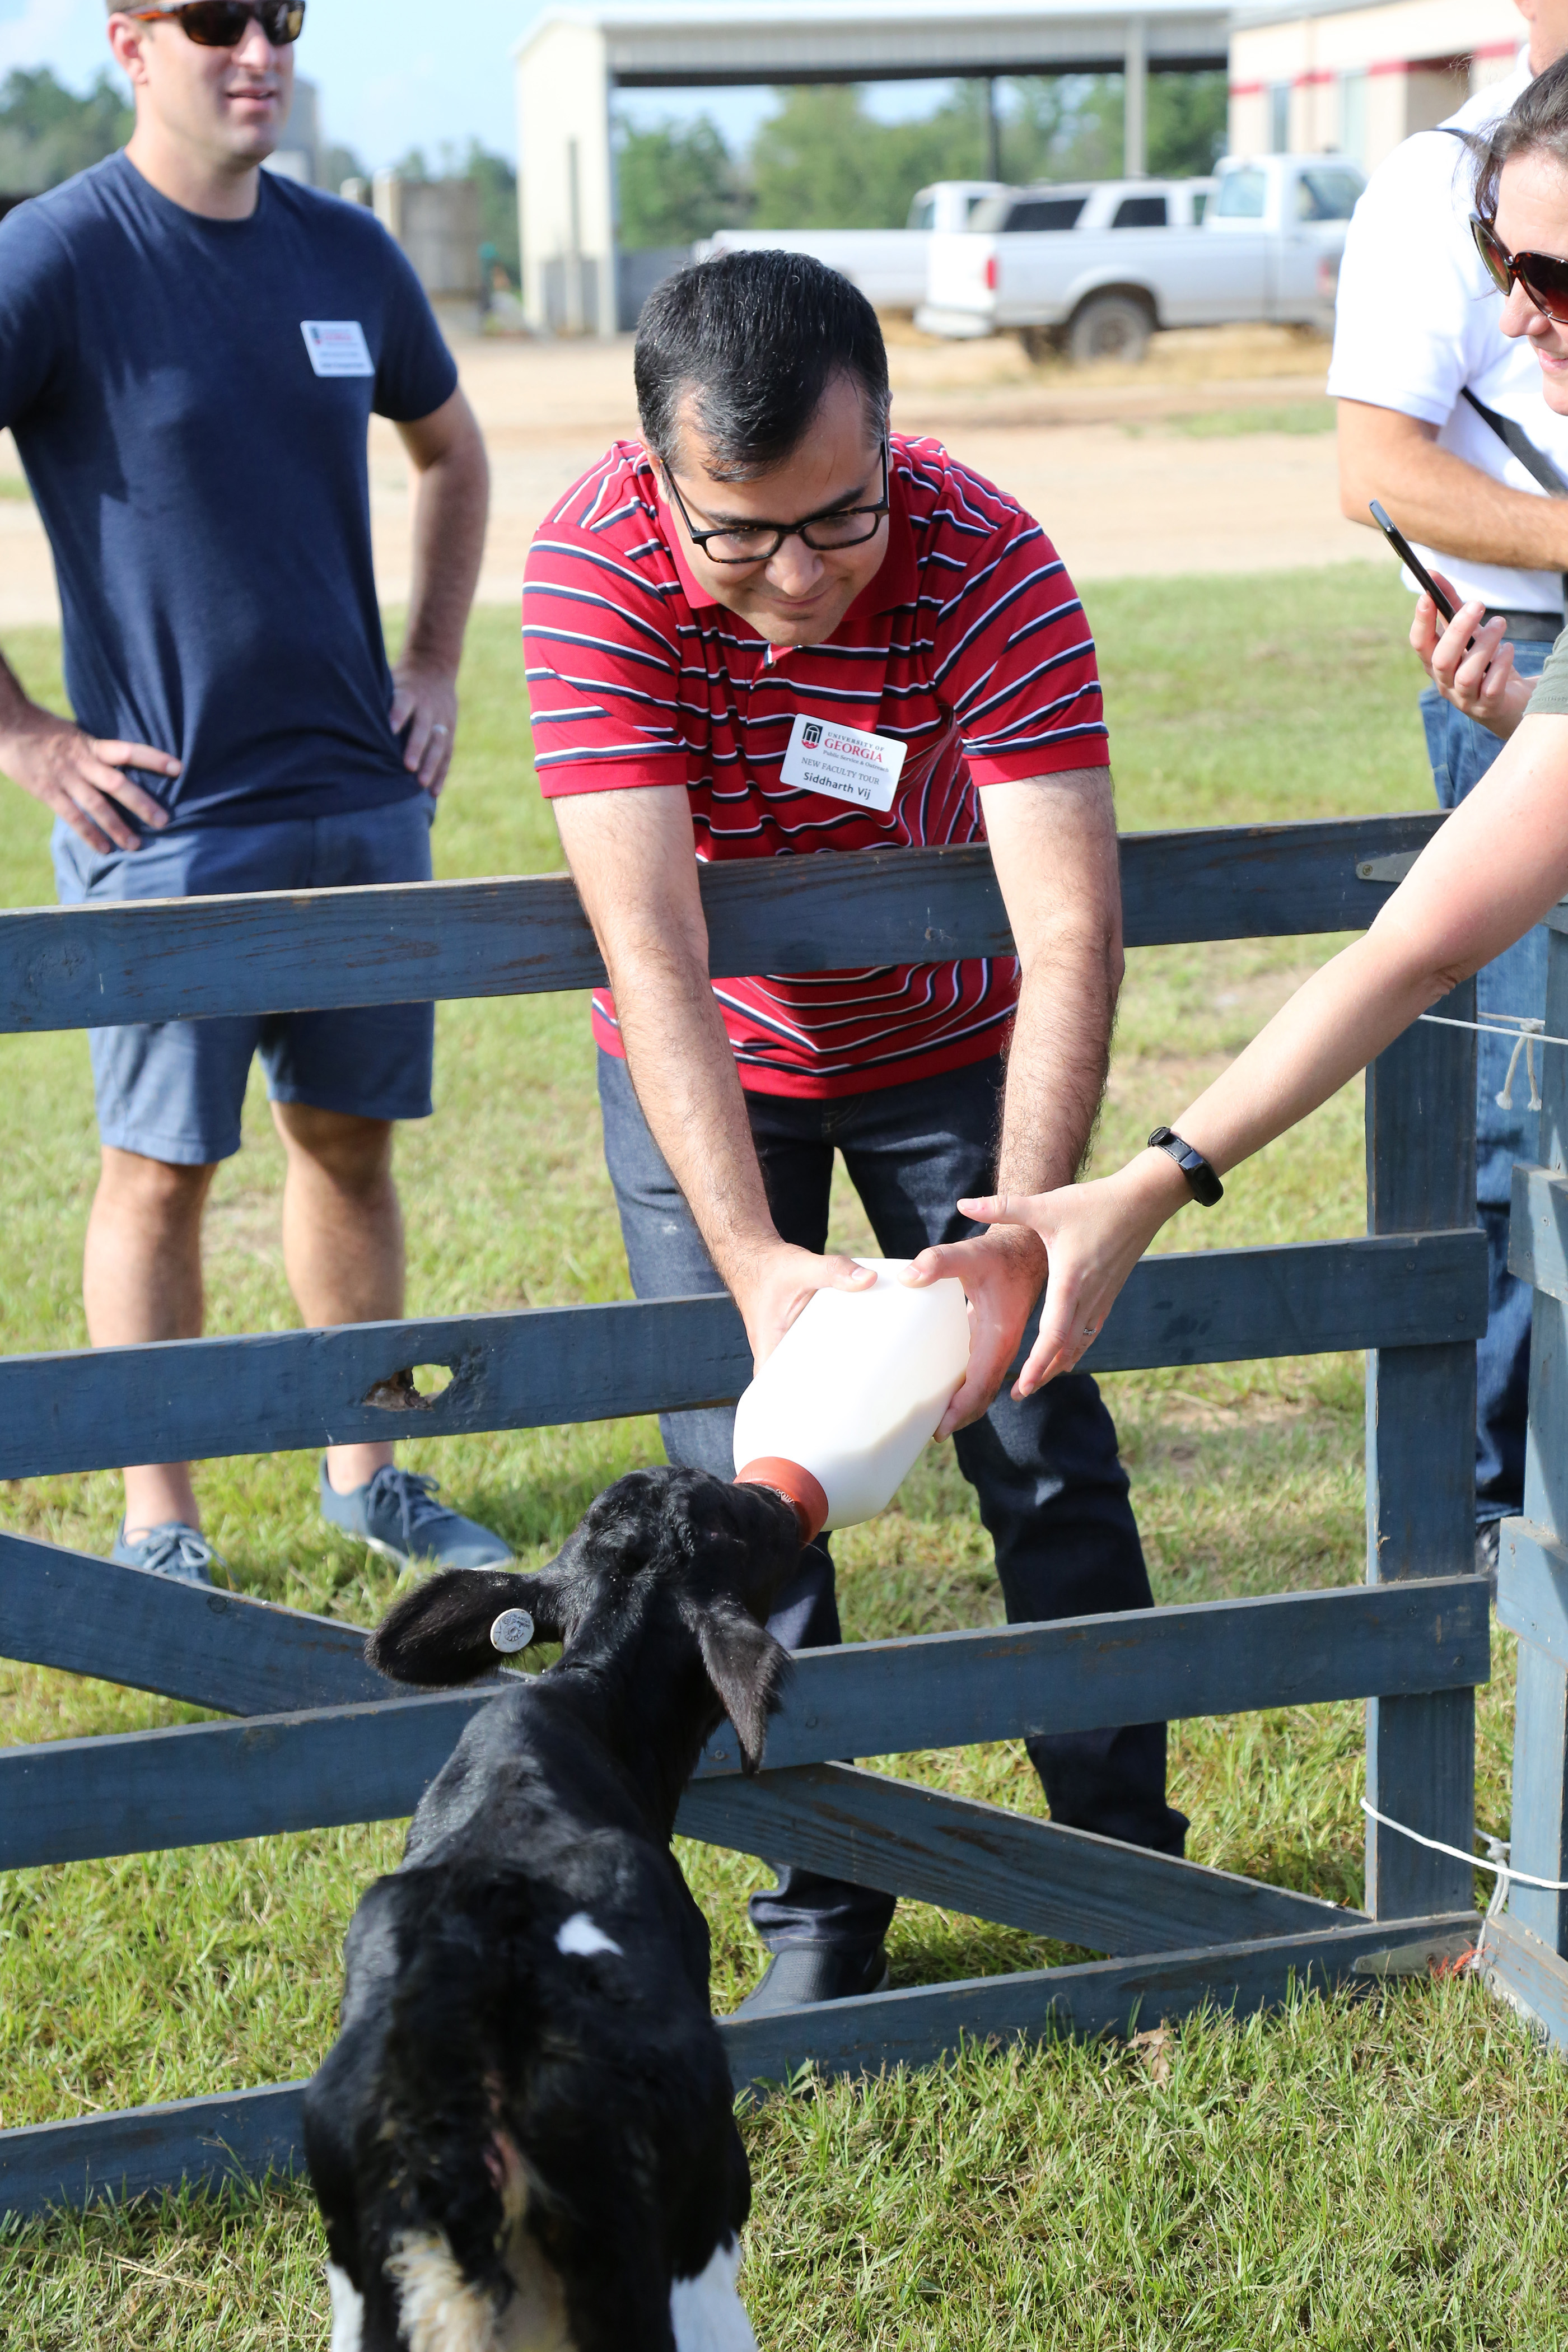 UGA faculty visited the UGA-Tifton Dairy Research Center and fed bottles of milk to 2-week-old calves.